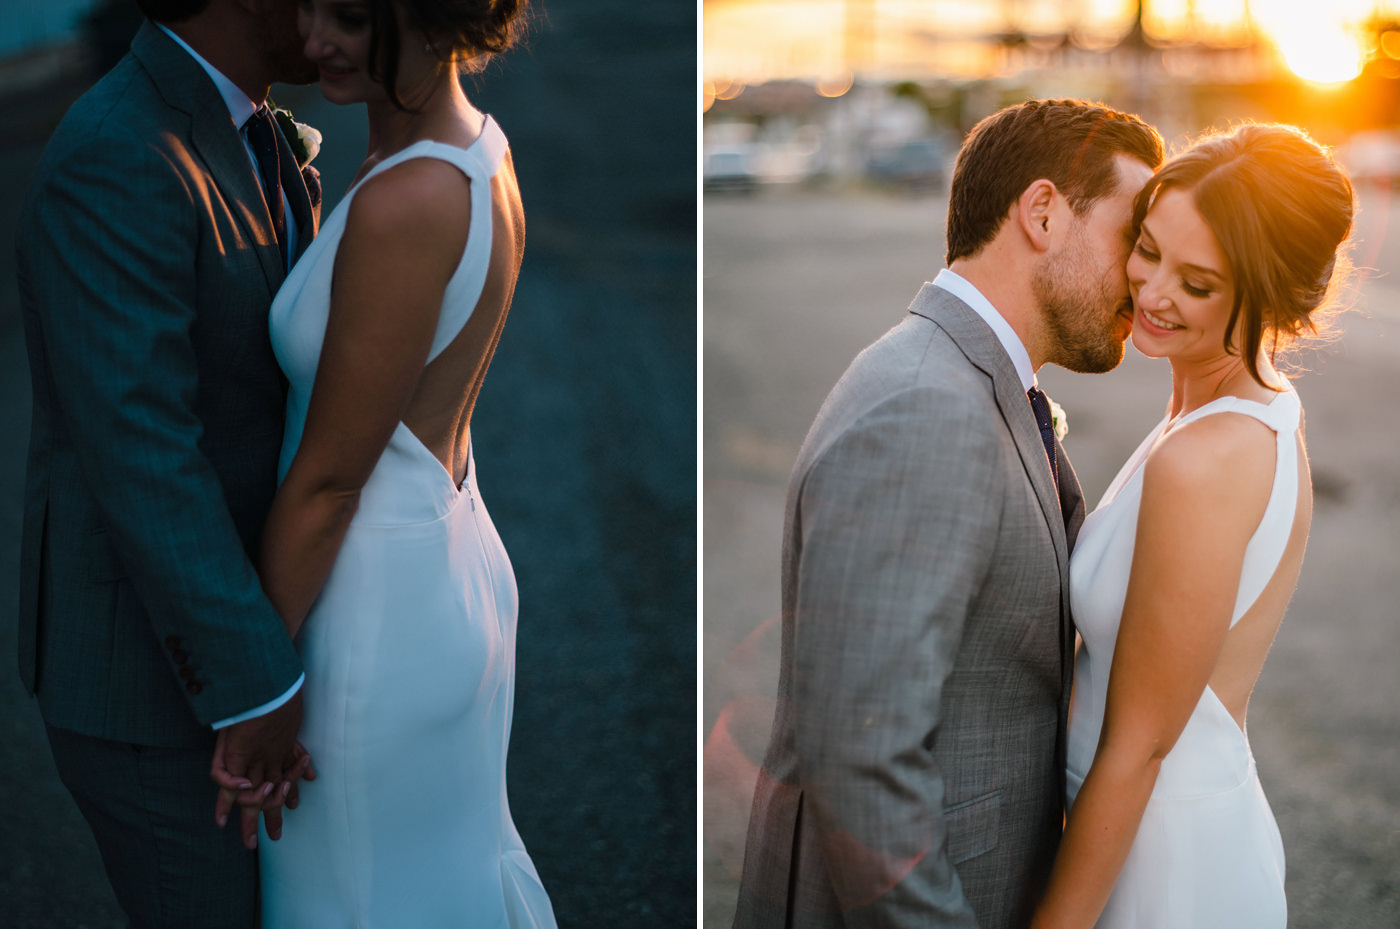 067-golden-hour-wedding-portraits-in-sodo-seattle-by-ryan-flynn.jpg